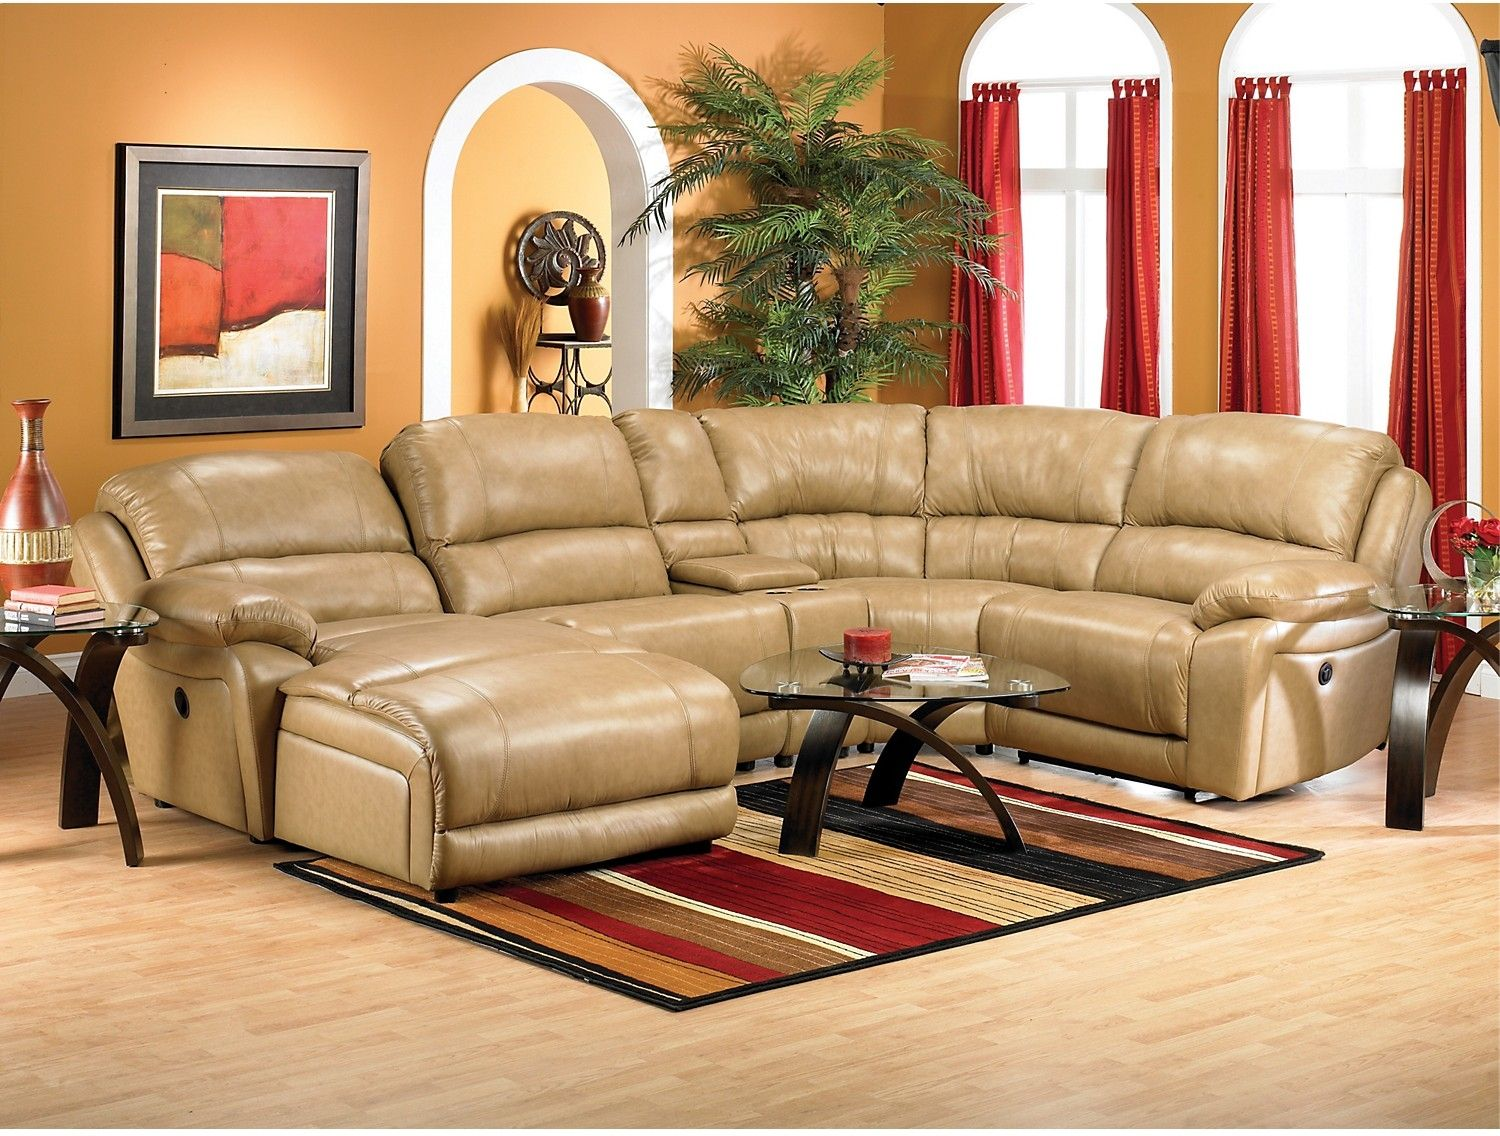 Marco Genuine Leather 5-Piece Sectional with Left-Facing Inclining Chaise u2013 Toffee : marco sectional - Sectionals, Sofas & Couches